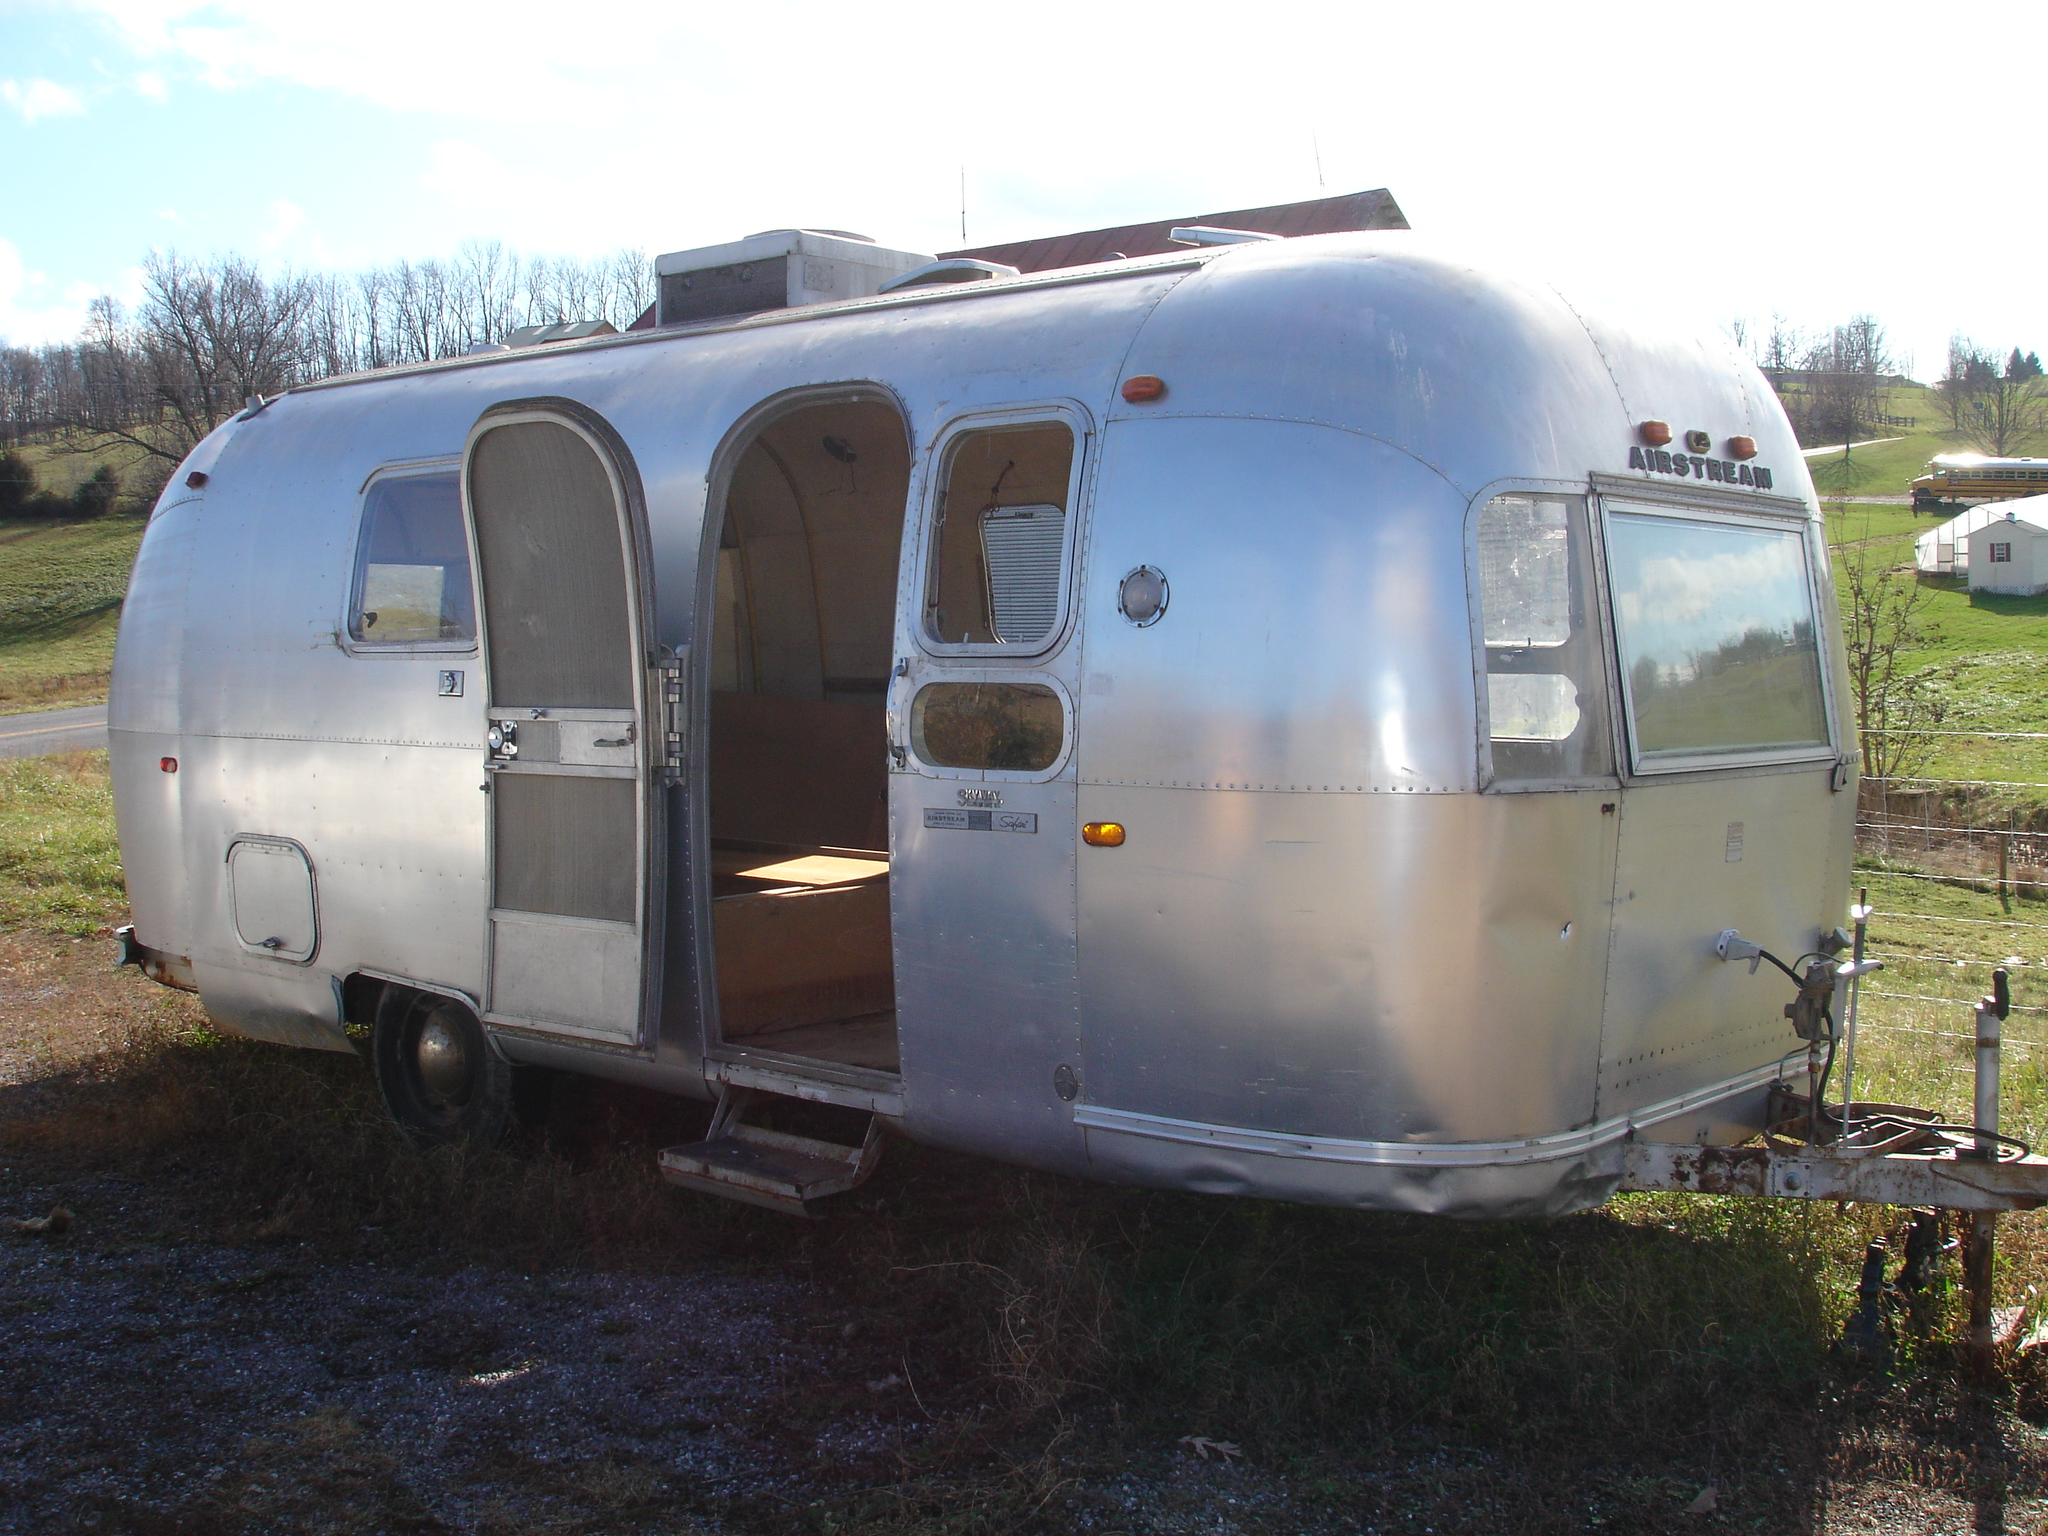 1969 Airstream Safari profile